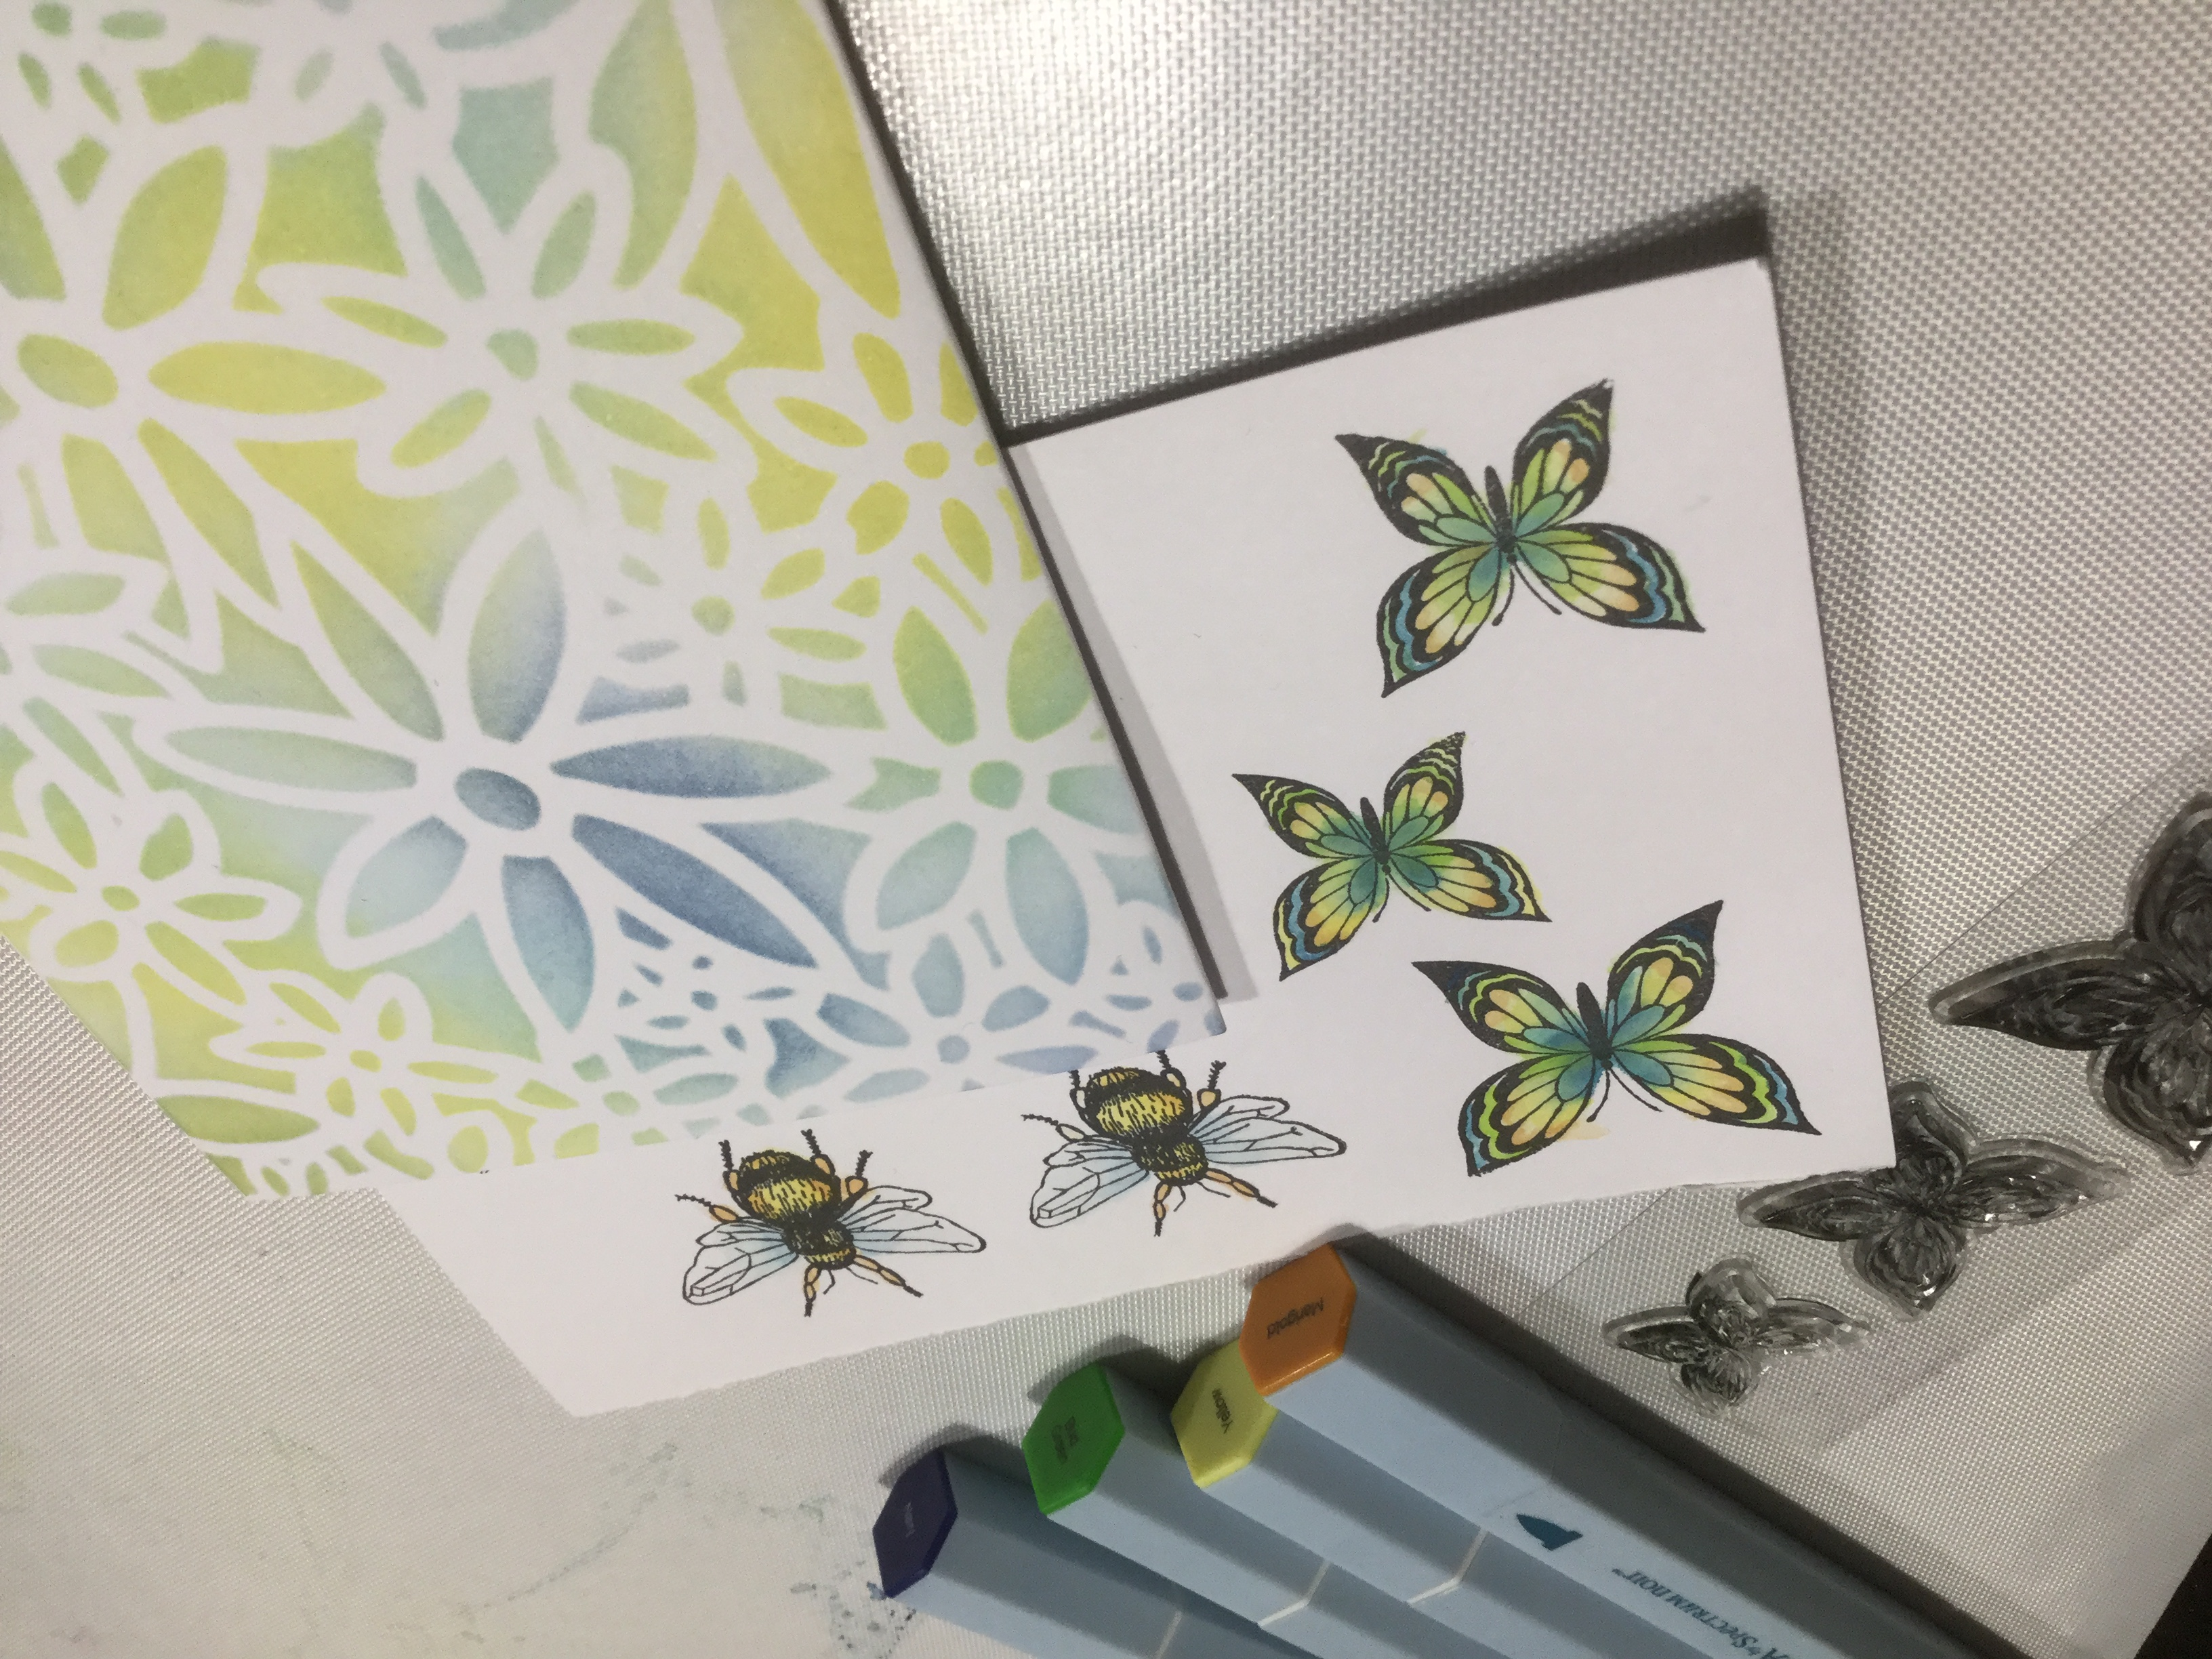 Aquamarkers, stamps and stencil